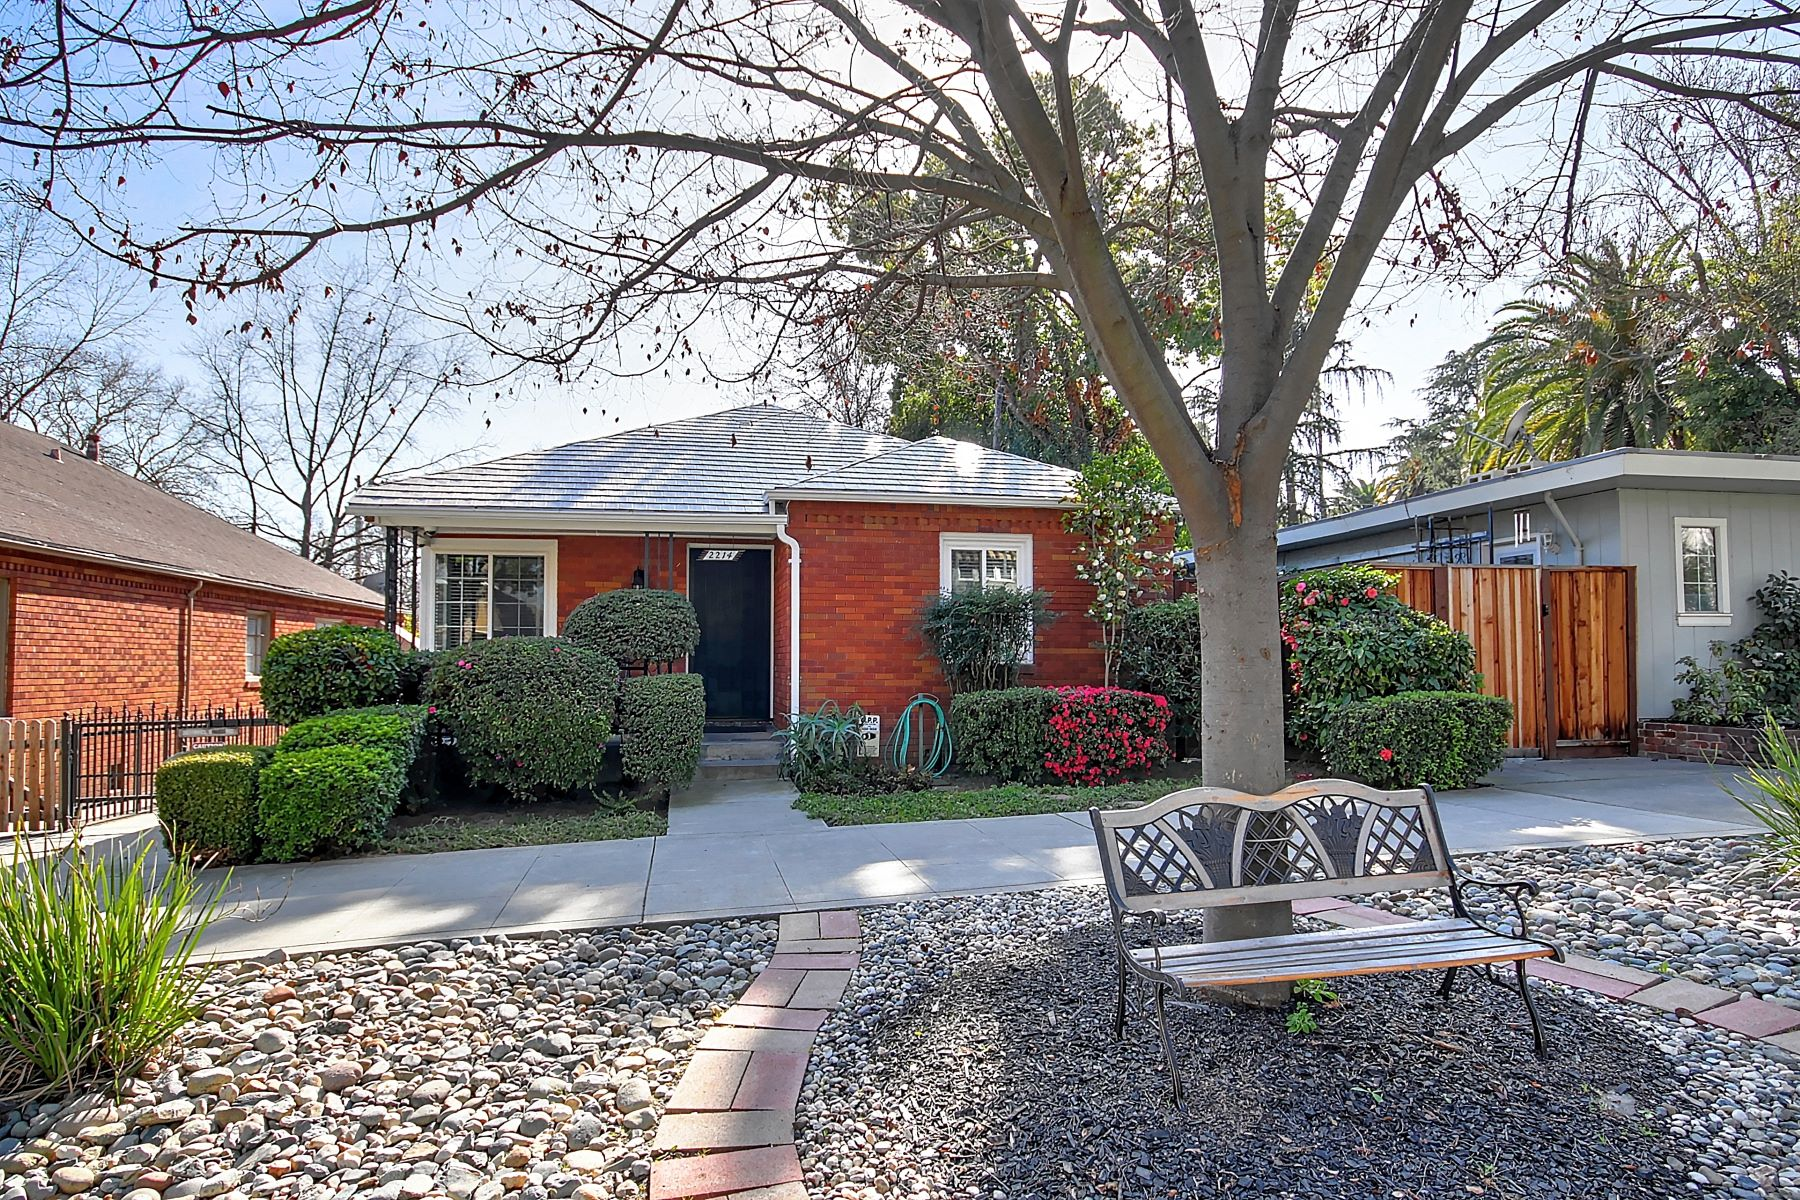 Single Family Homes for Sale at 2214 U Street, Sacramento, CA 95818 2214 U Street Sacramento, California 95818 United States